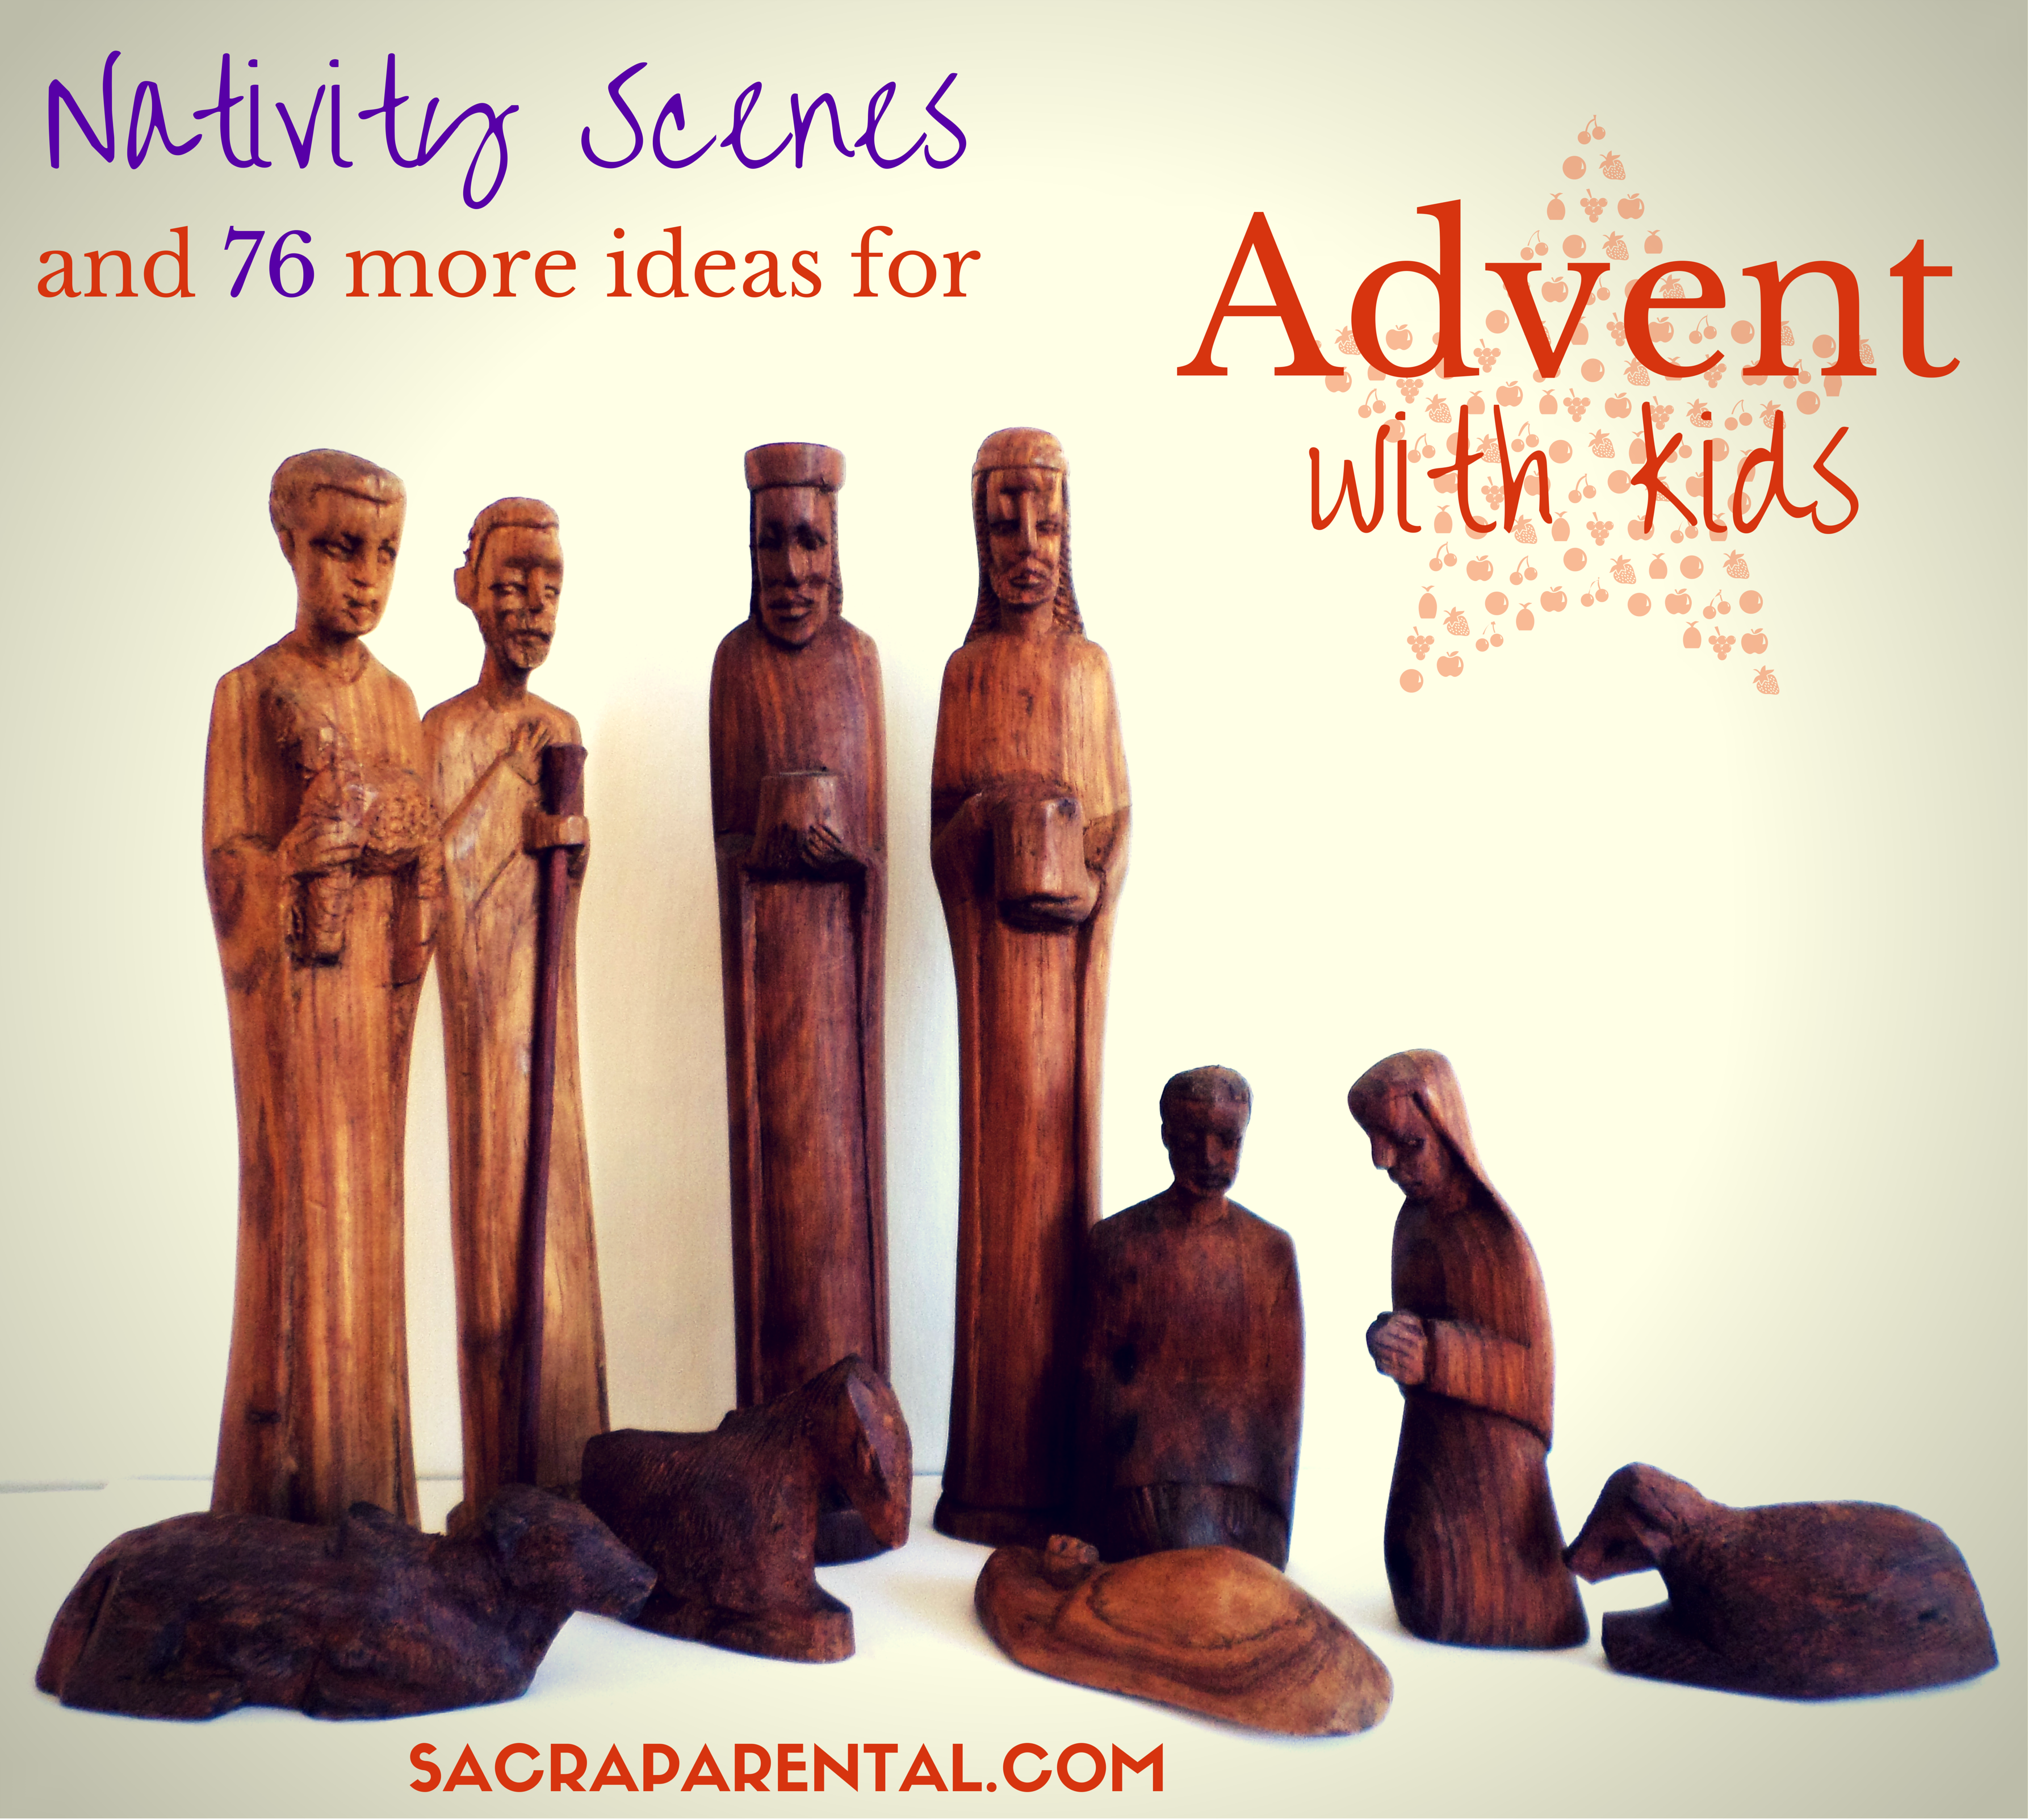 Nativity Scenes and lots more ideas for Advent with Kids